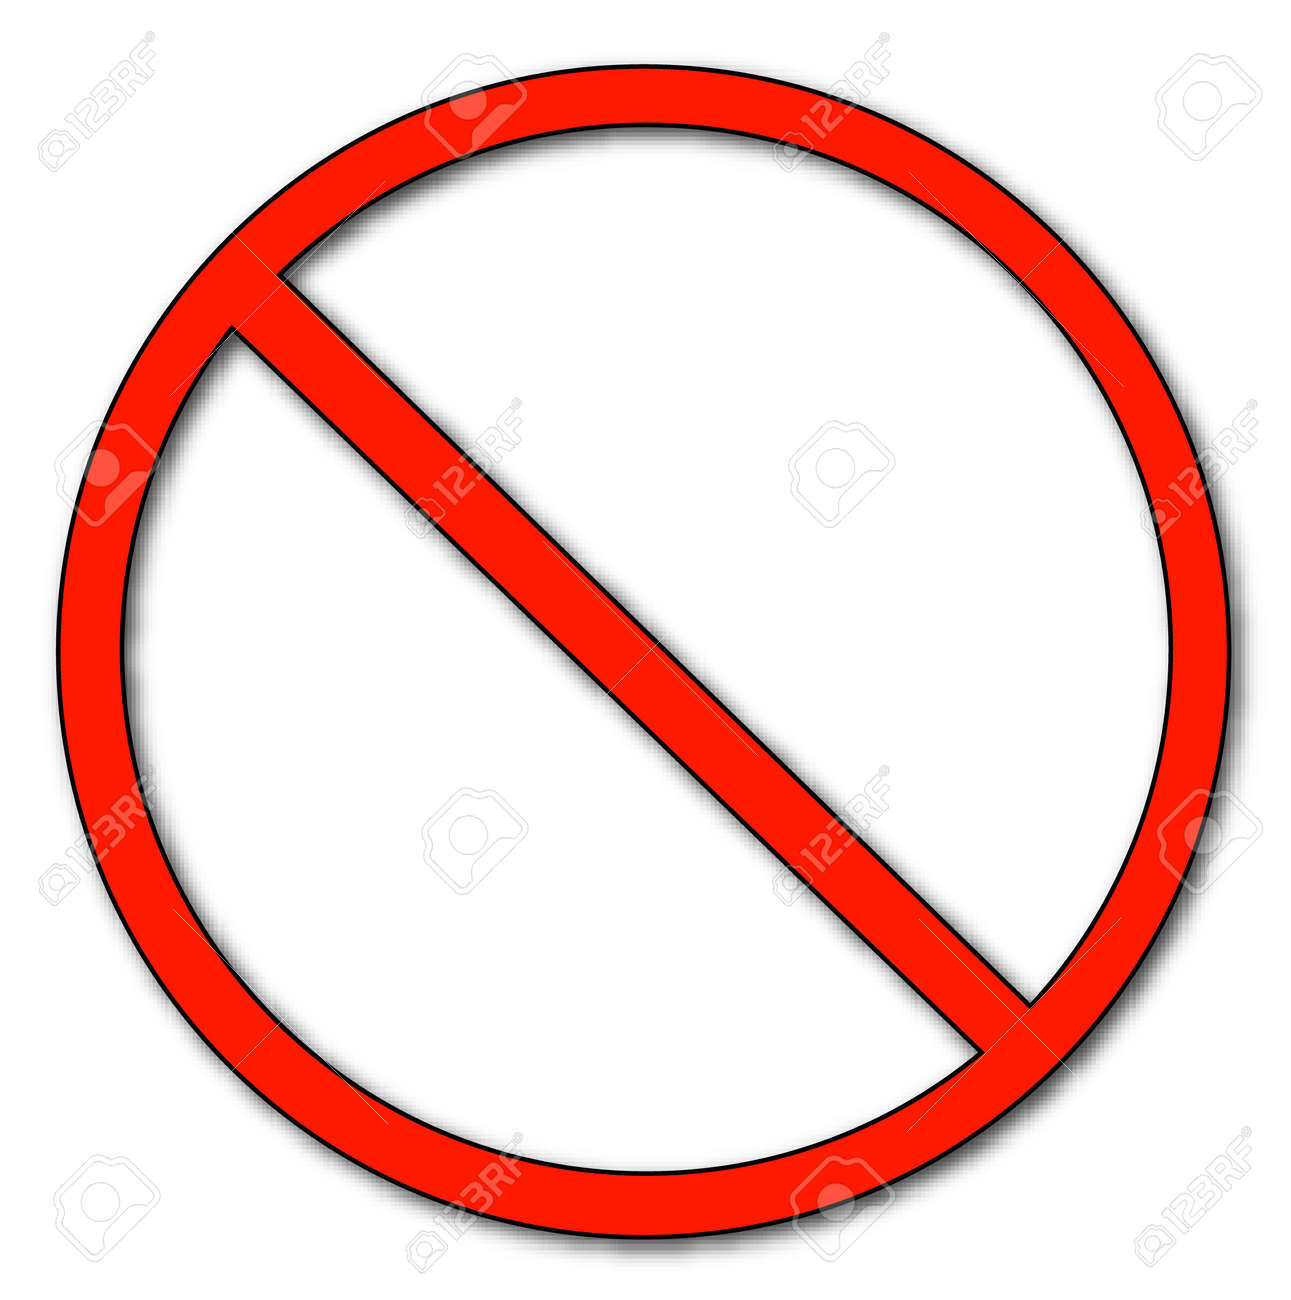 red no or not allowed symbol - vector Stock Vector - 2516375